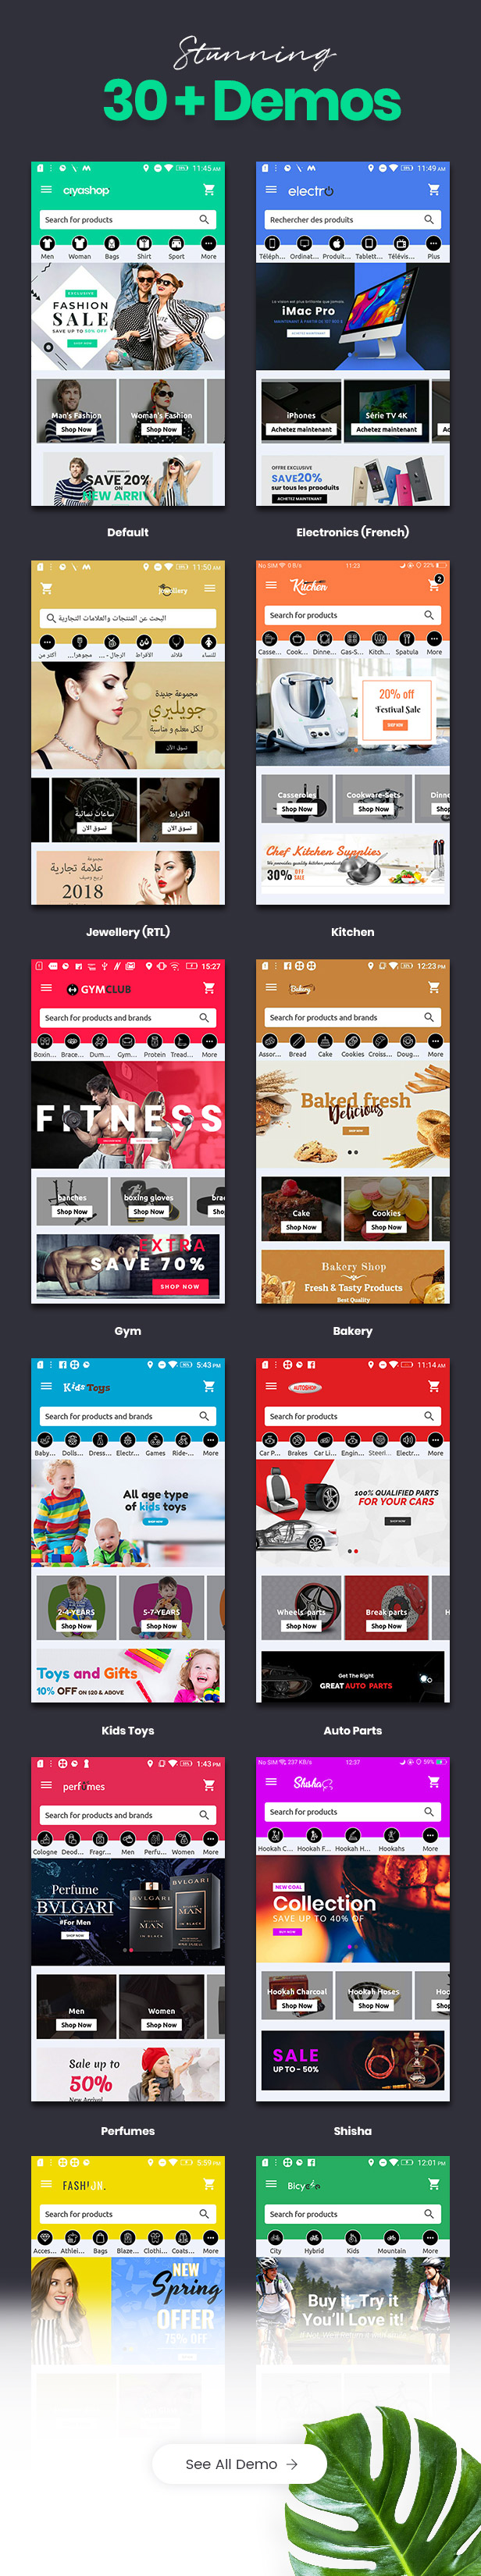 CiyaShop Native Android Application based on WooCommerce - 13